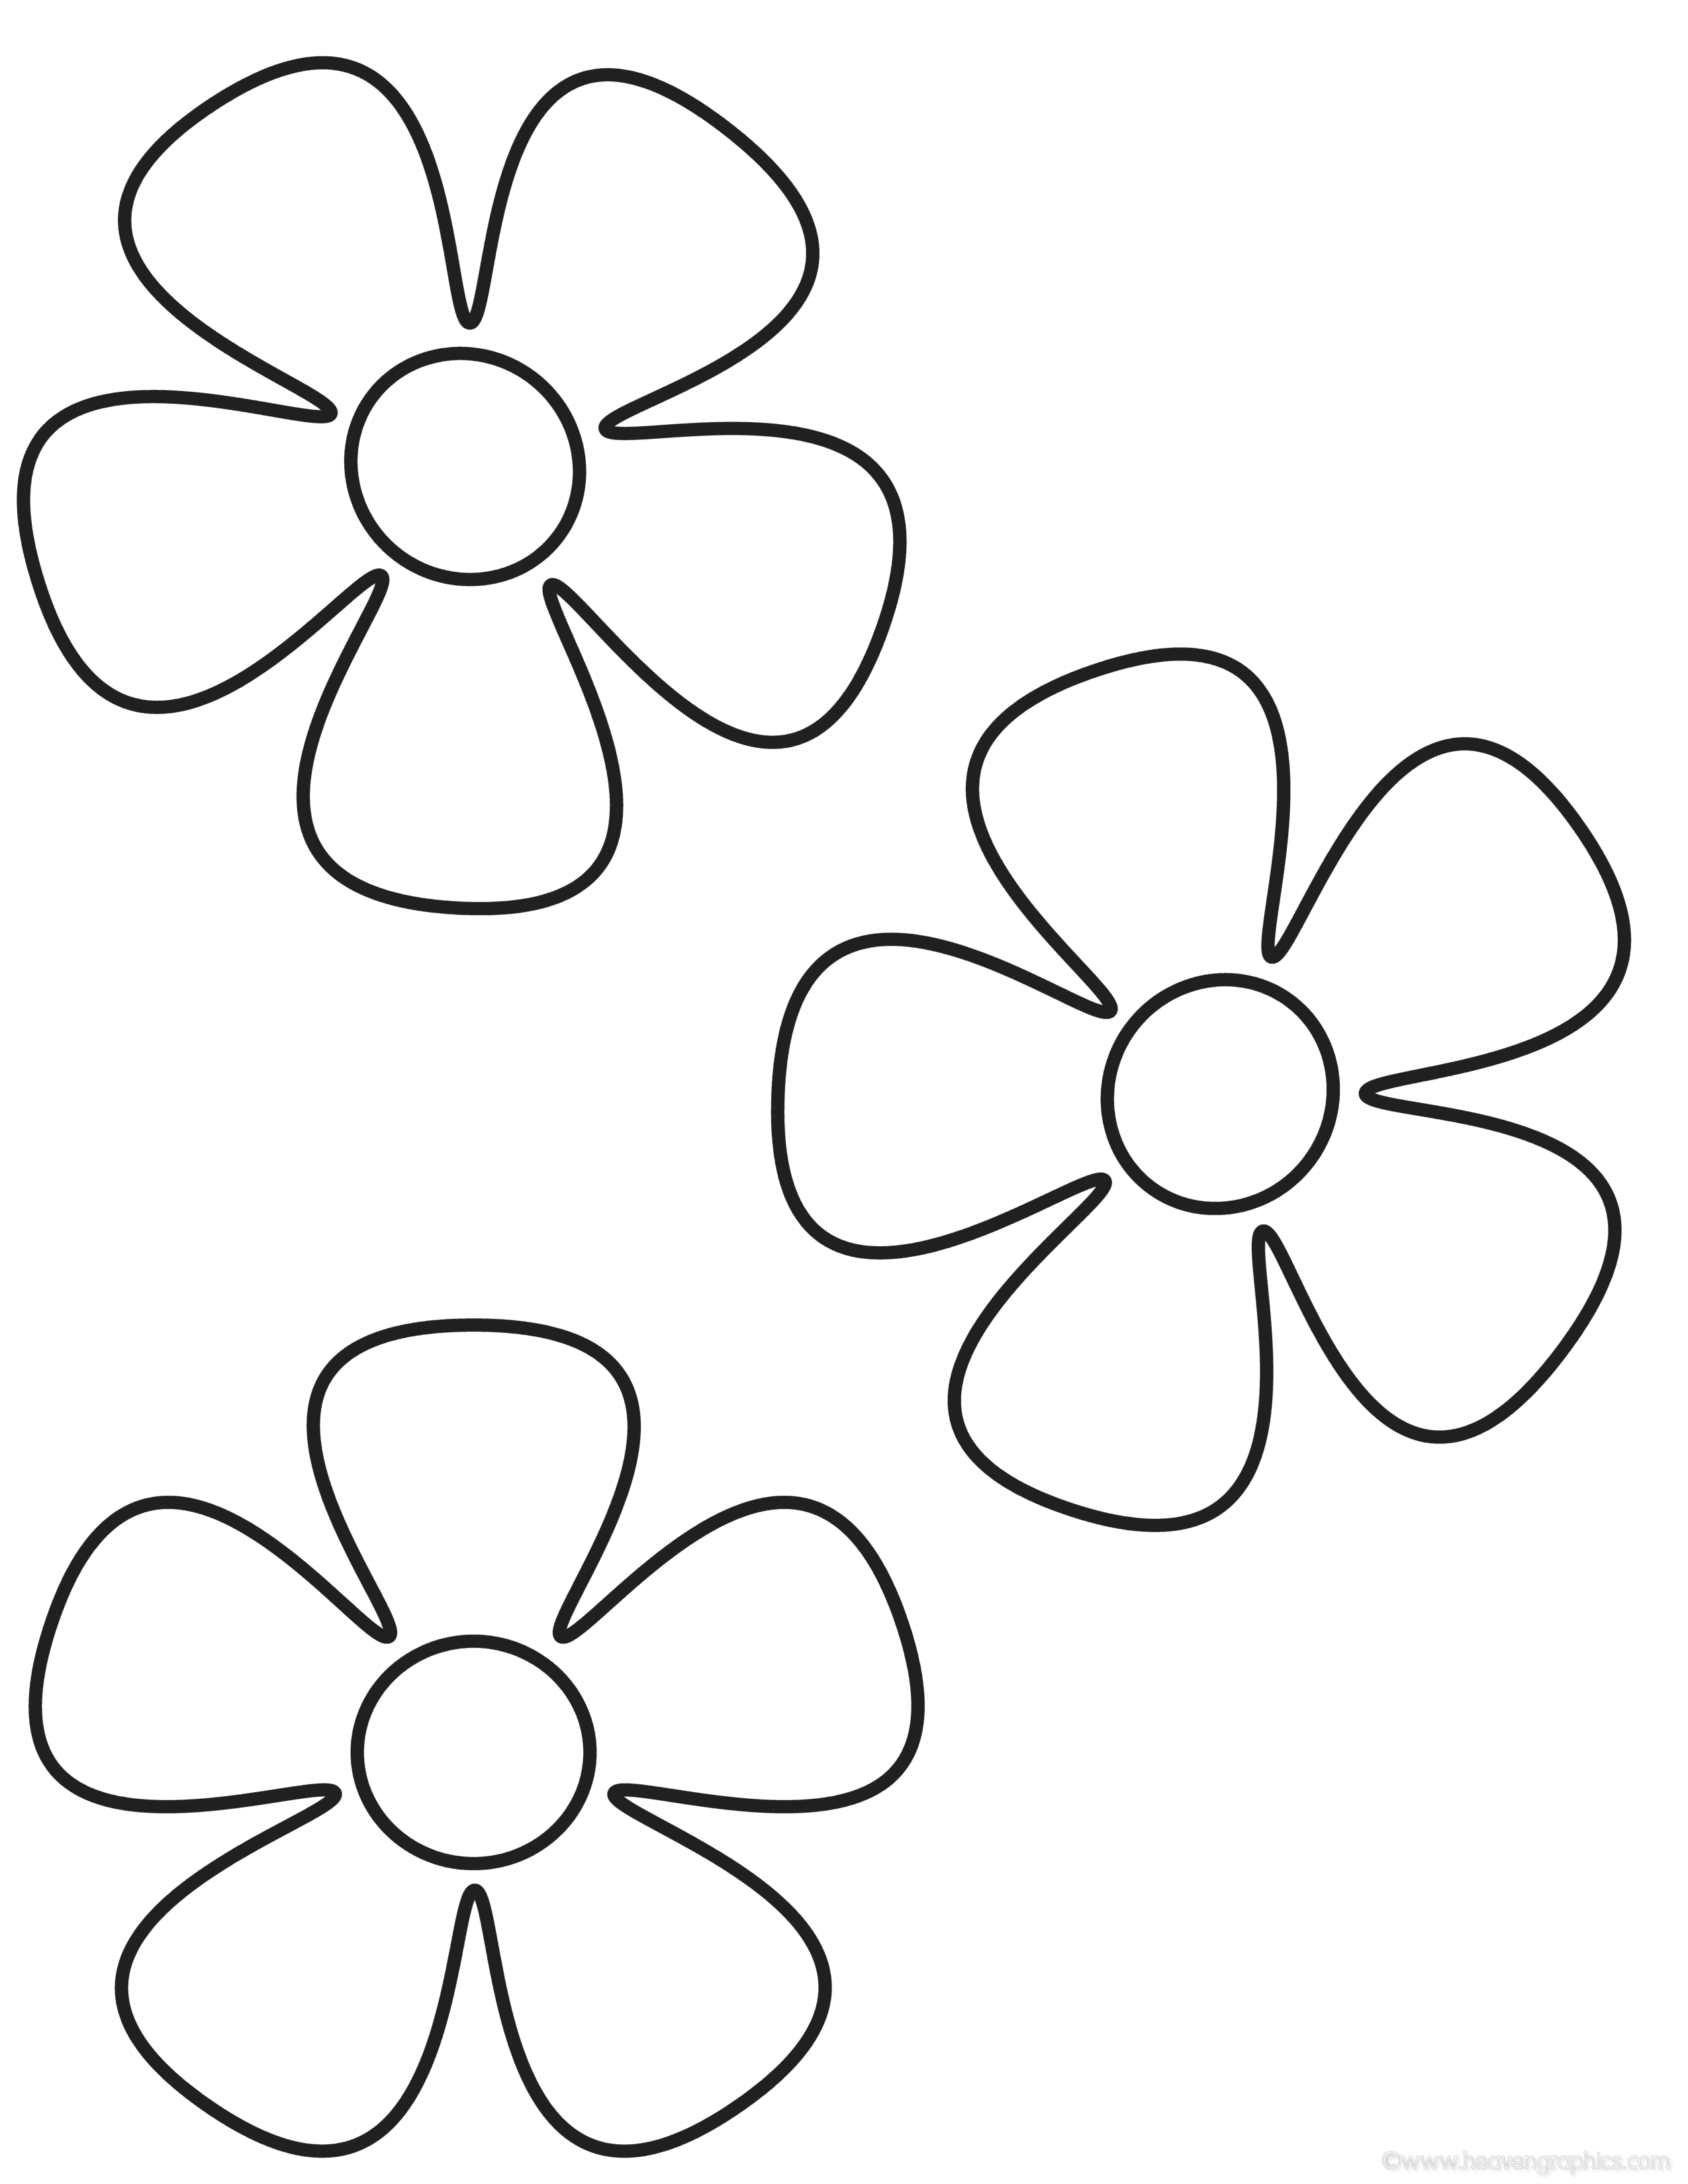 coloring pics of flowers free printable beautiful flowers coloring page for kids of pics flowers coloring